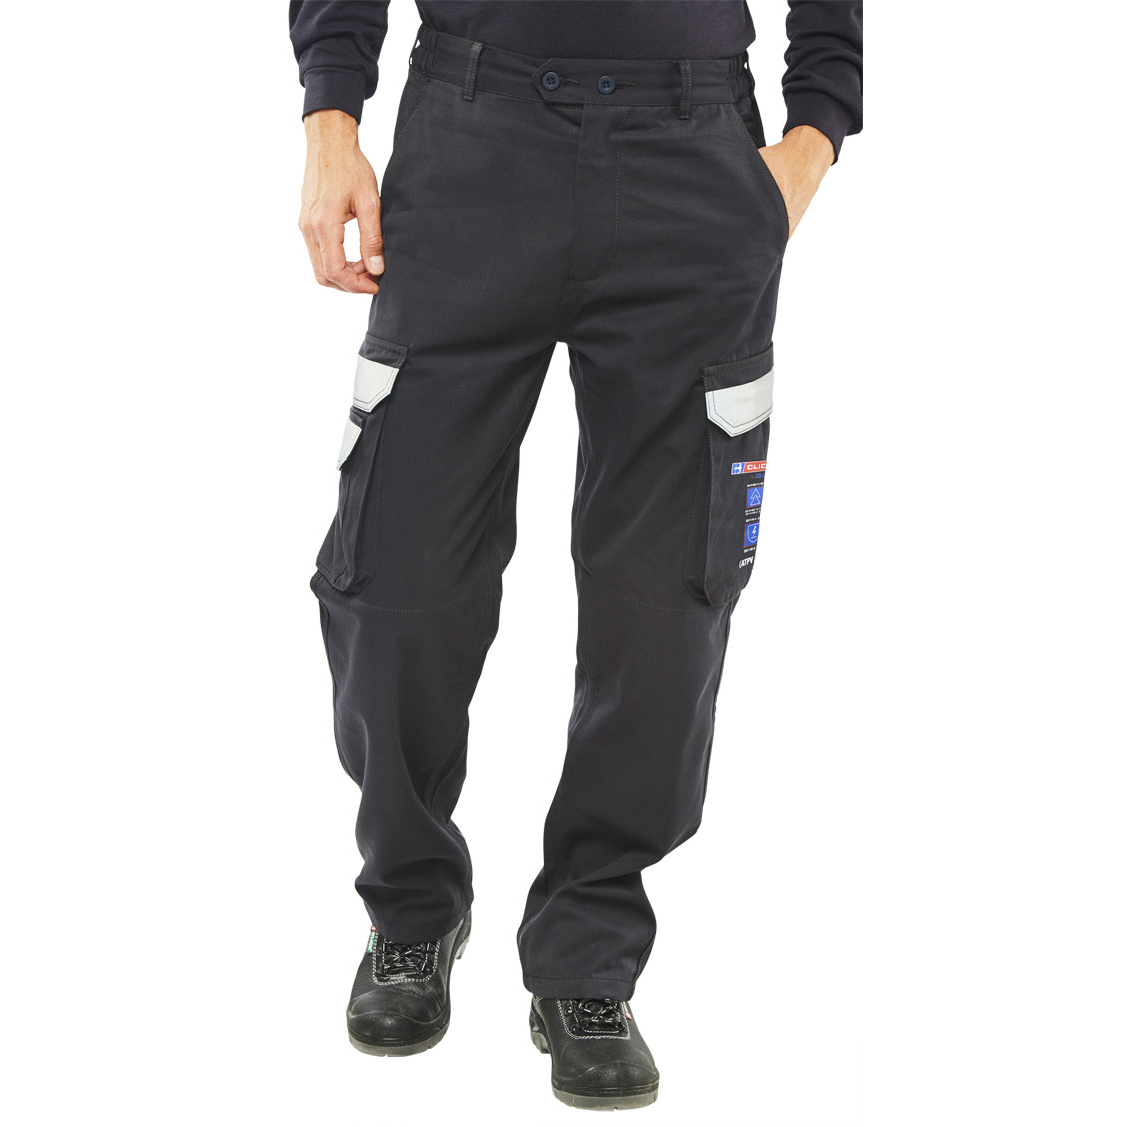 Fire Retardant / Flame Resistant Click Arc Flash Trousers Fire Retardant Navy Blue 32-Short Ref CARC4N32S *Up to 3 Day Leadtime*